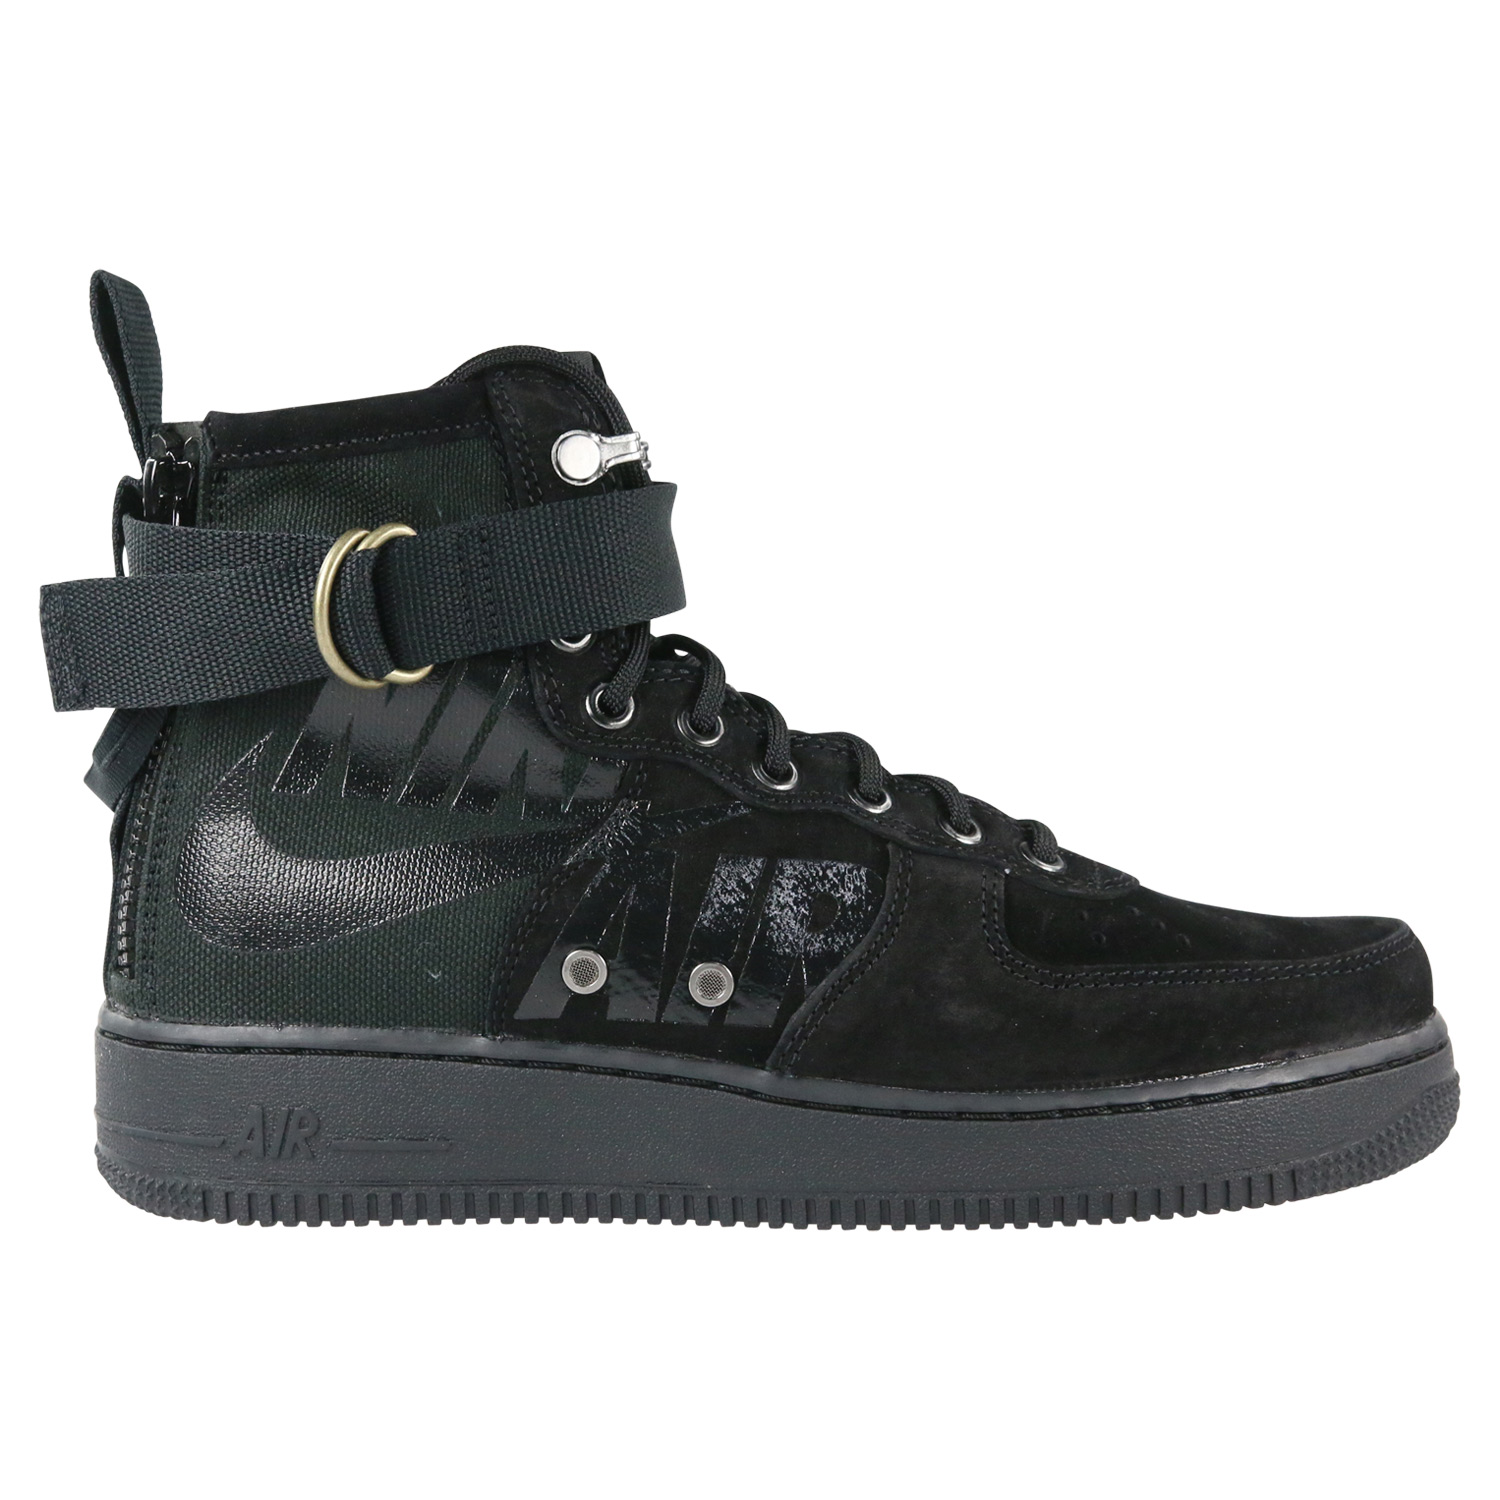 Nike SF Air Force 1 Mid Chaussures Chaussures Chaussures High-top Sneaker Homme 917753 aj9502 48065b